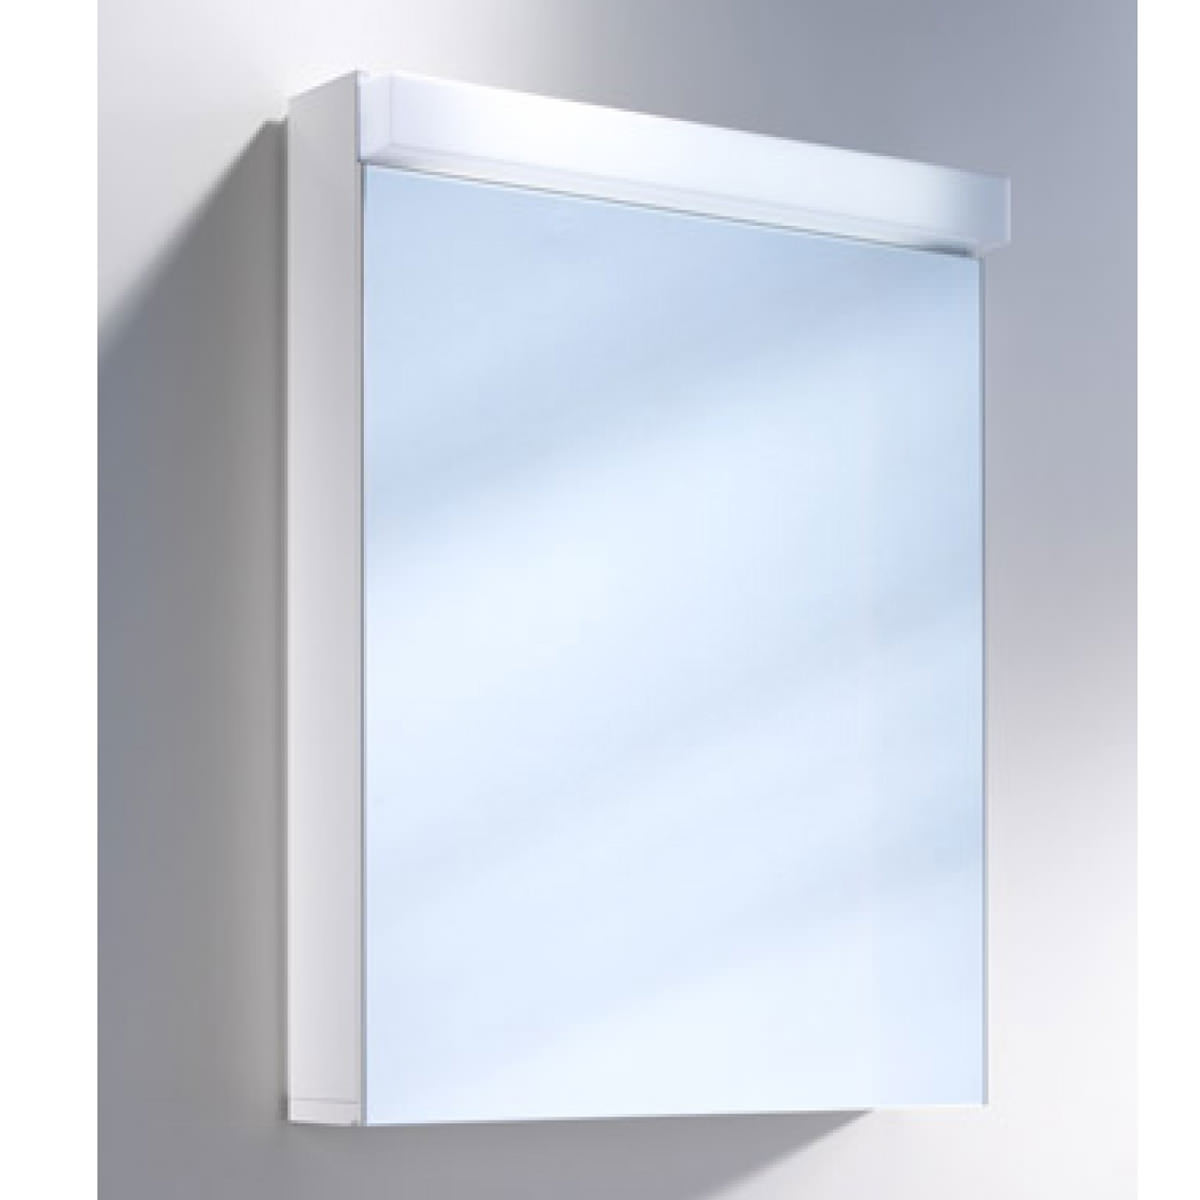 Lowline Cabinet Schneider Lowline 500mm 1 Door Mirror Cabinet With